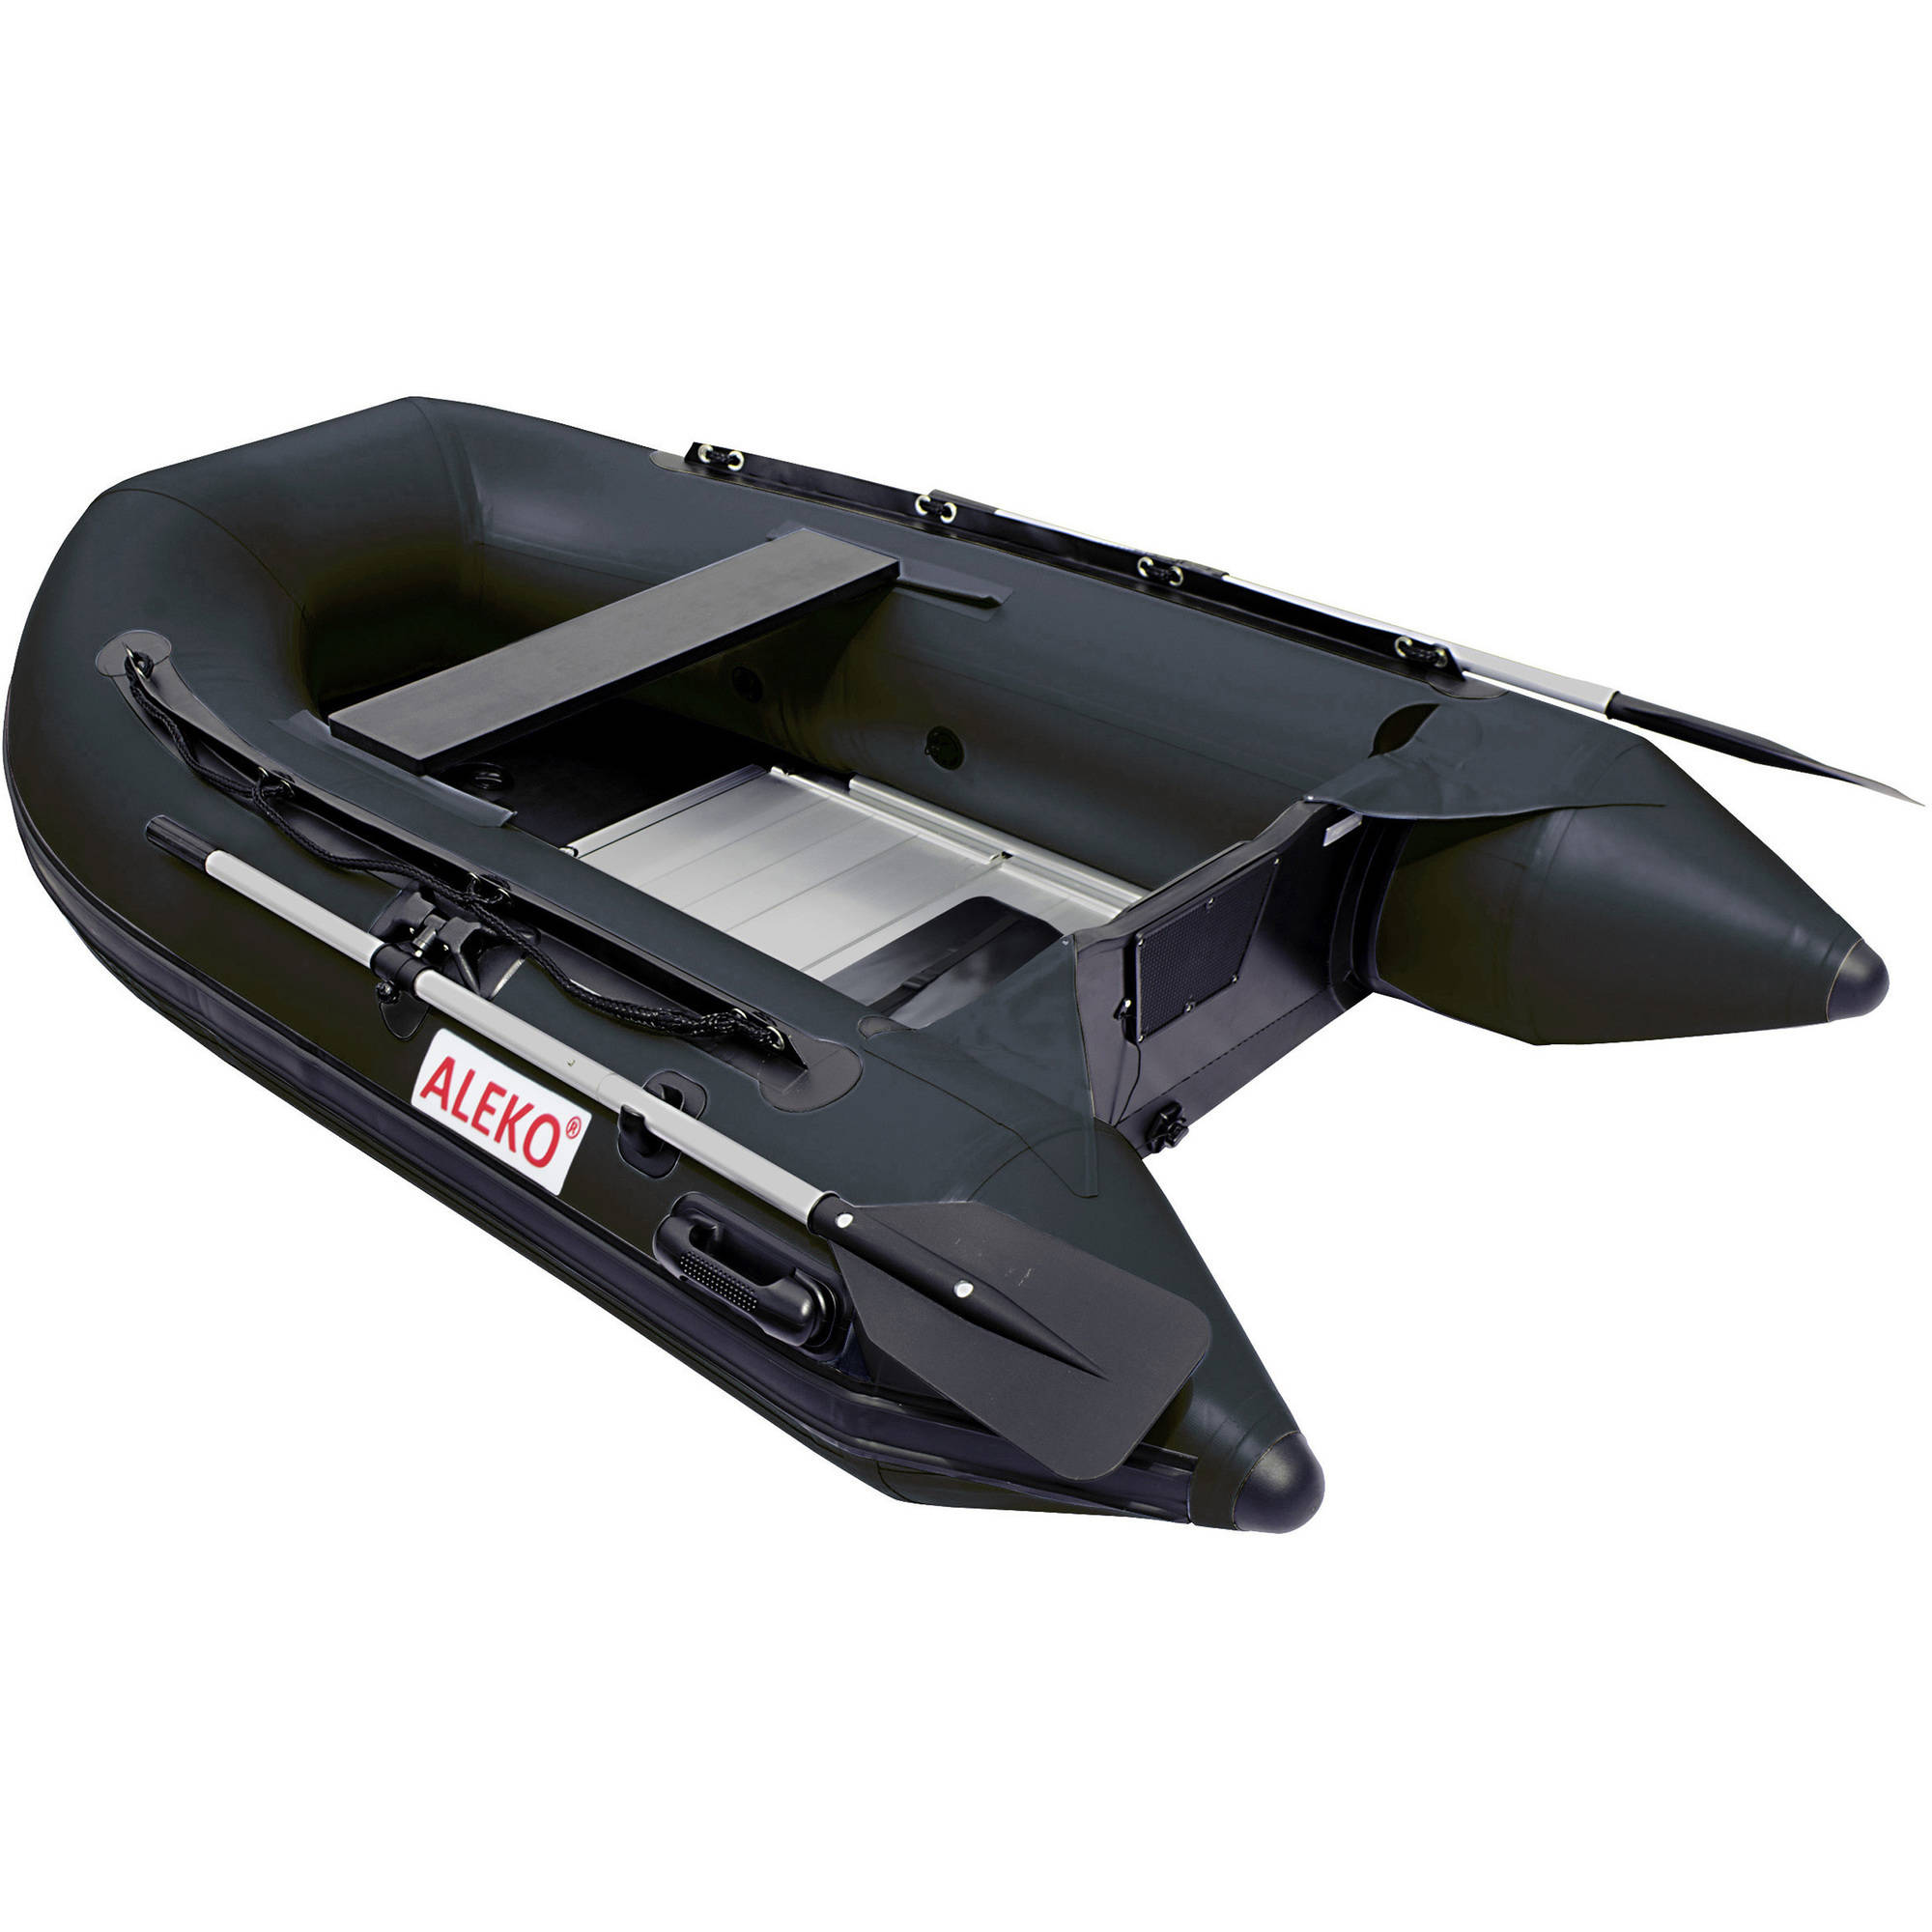 ALEKO Inflatable Boat Aluminum Floor 8.4 Feet Black by ALEKO